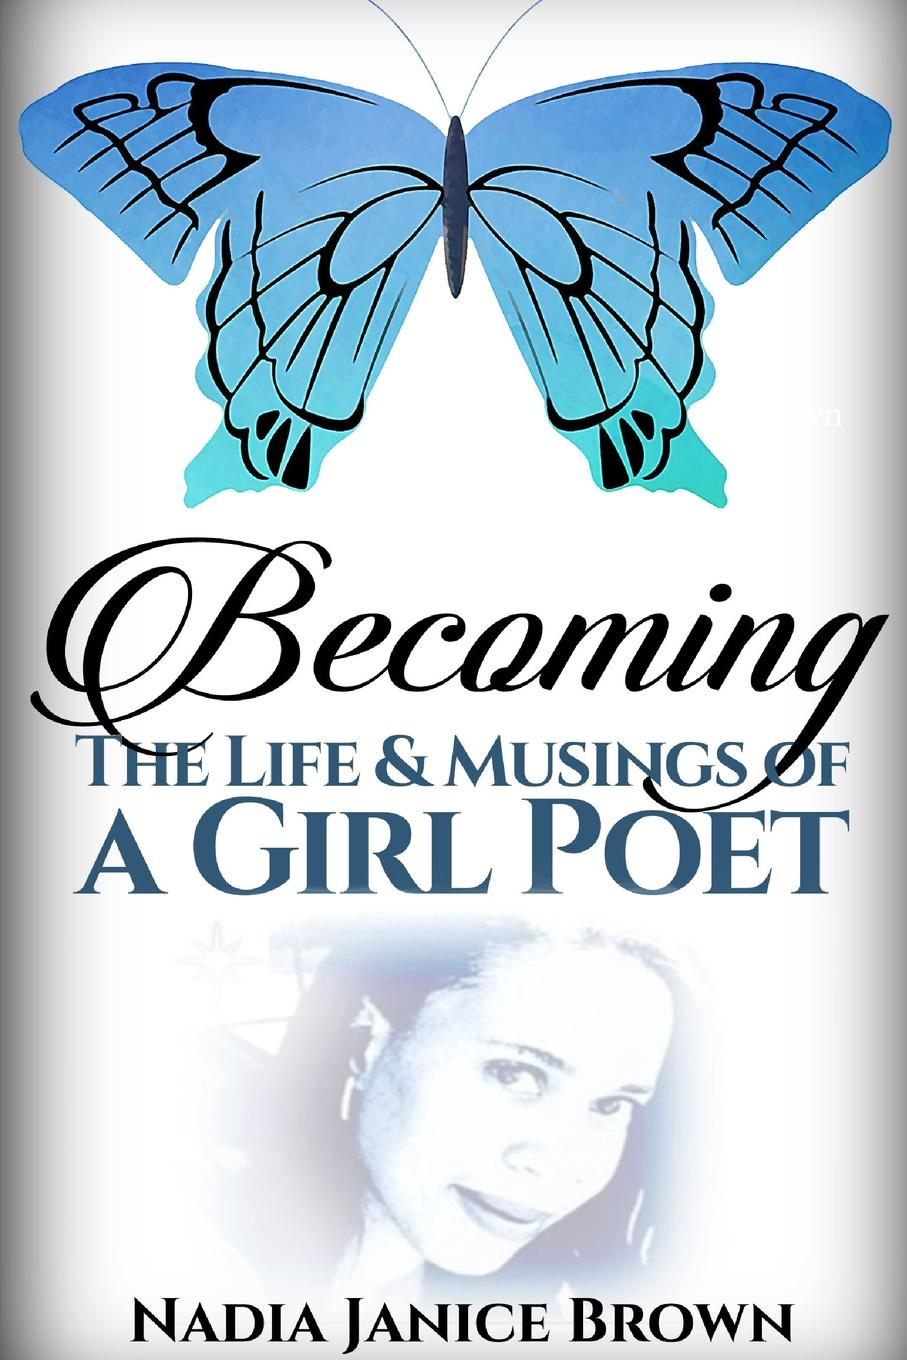 Nadia Brown Becoming. The Life . Musings of a Girl Poet